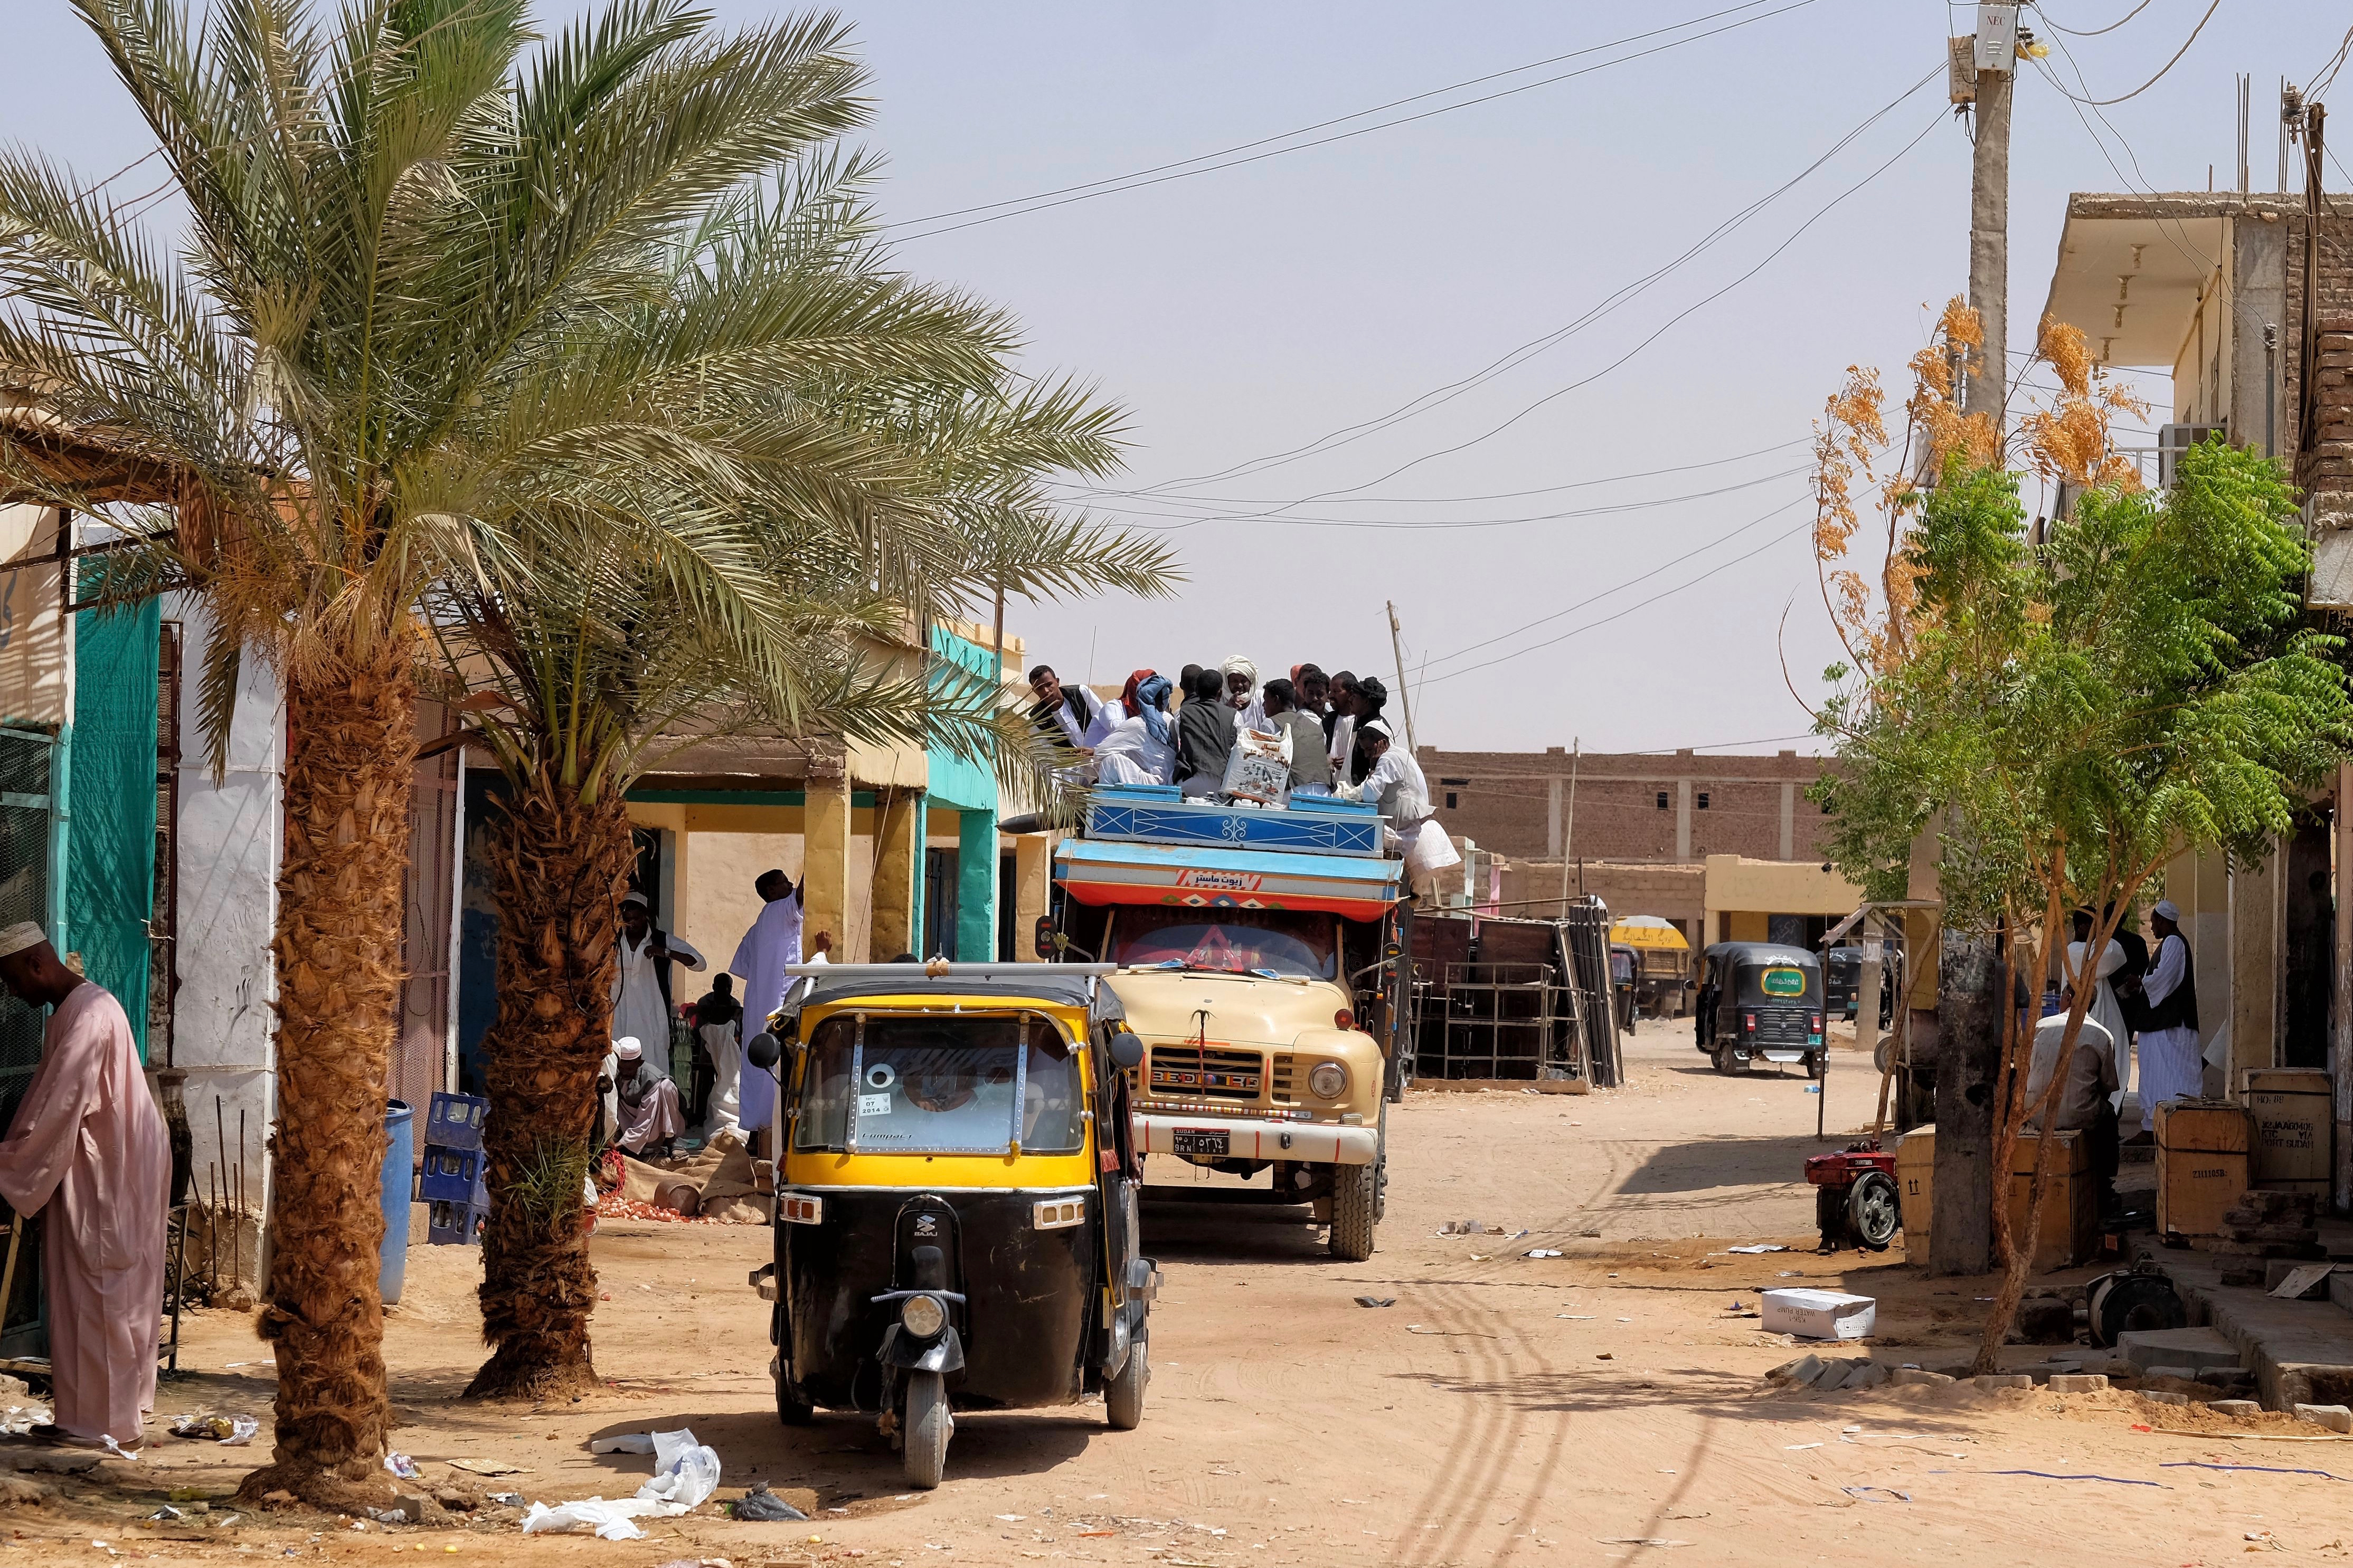 Distrust leads to lack of communication in Sudan